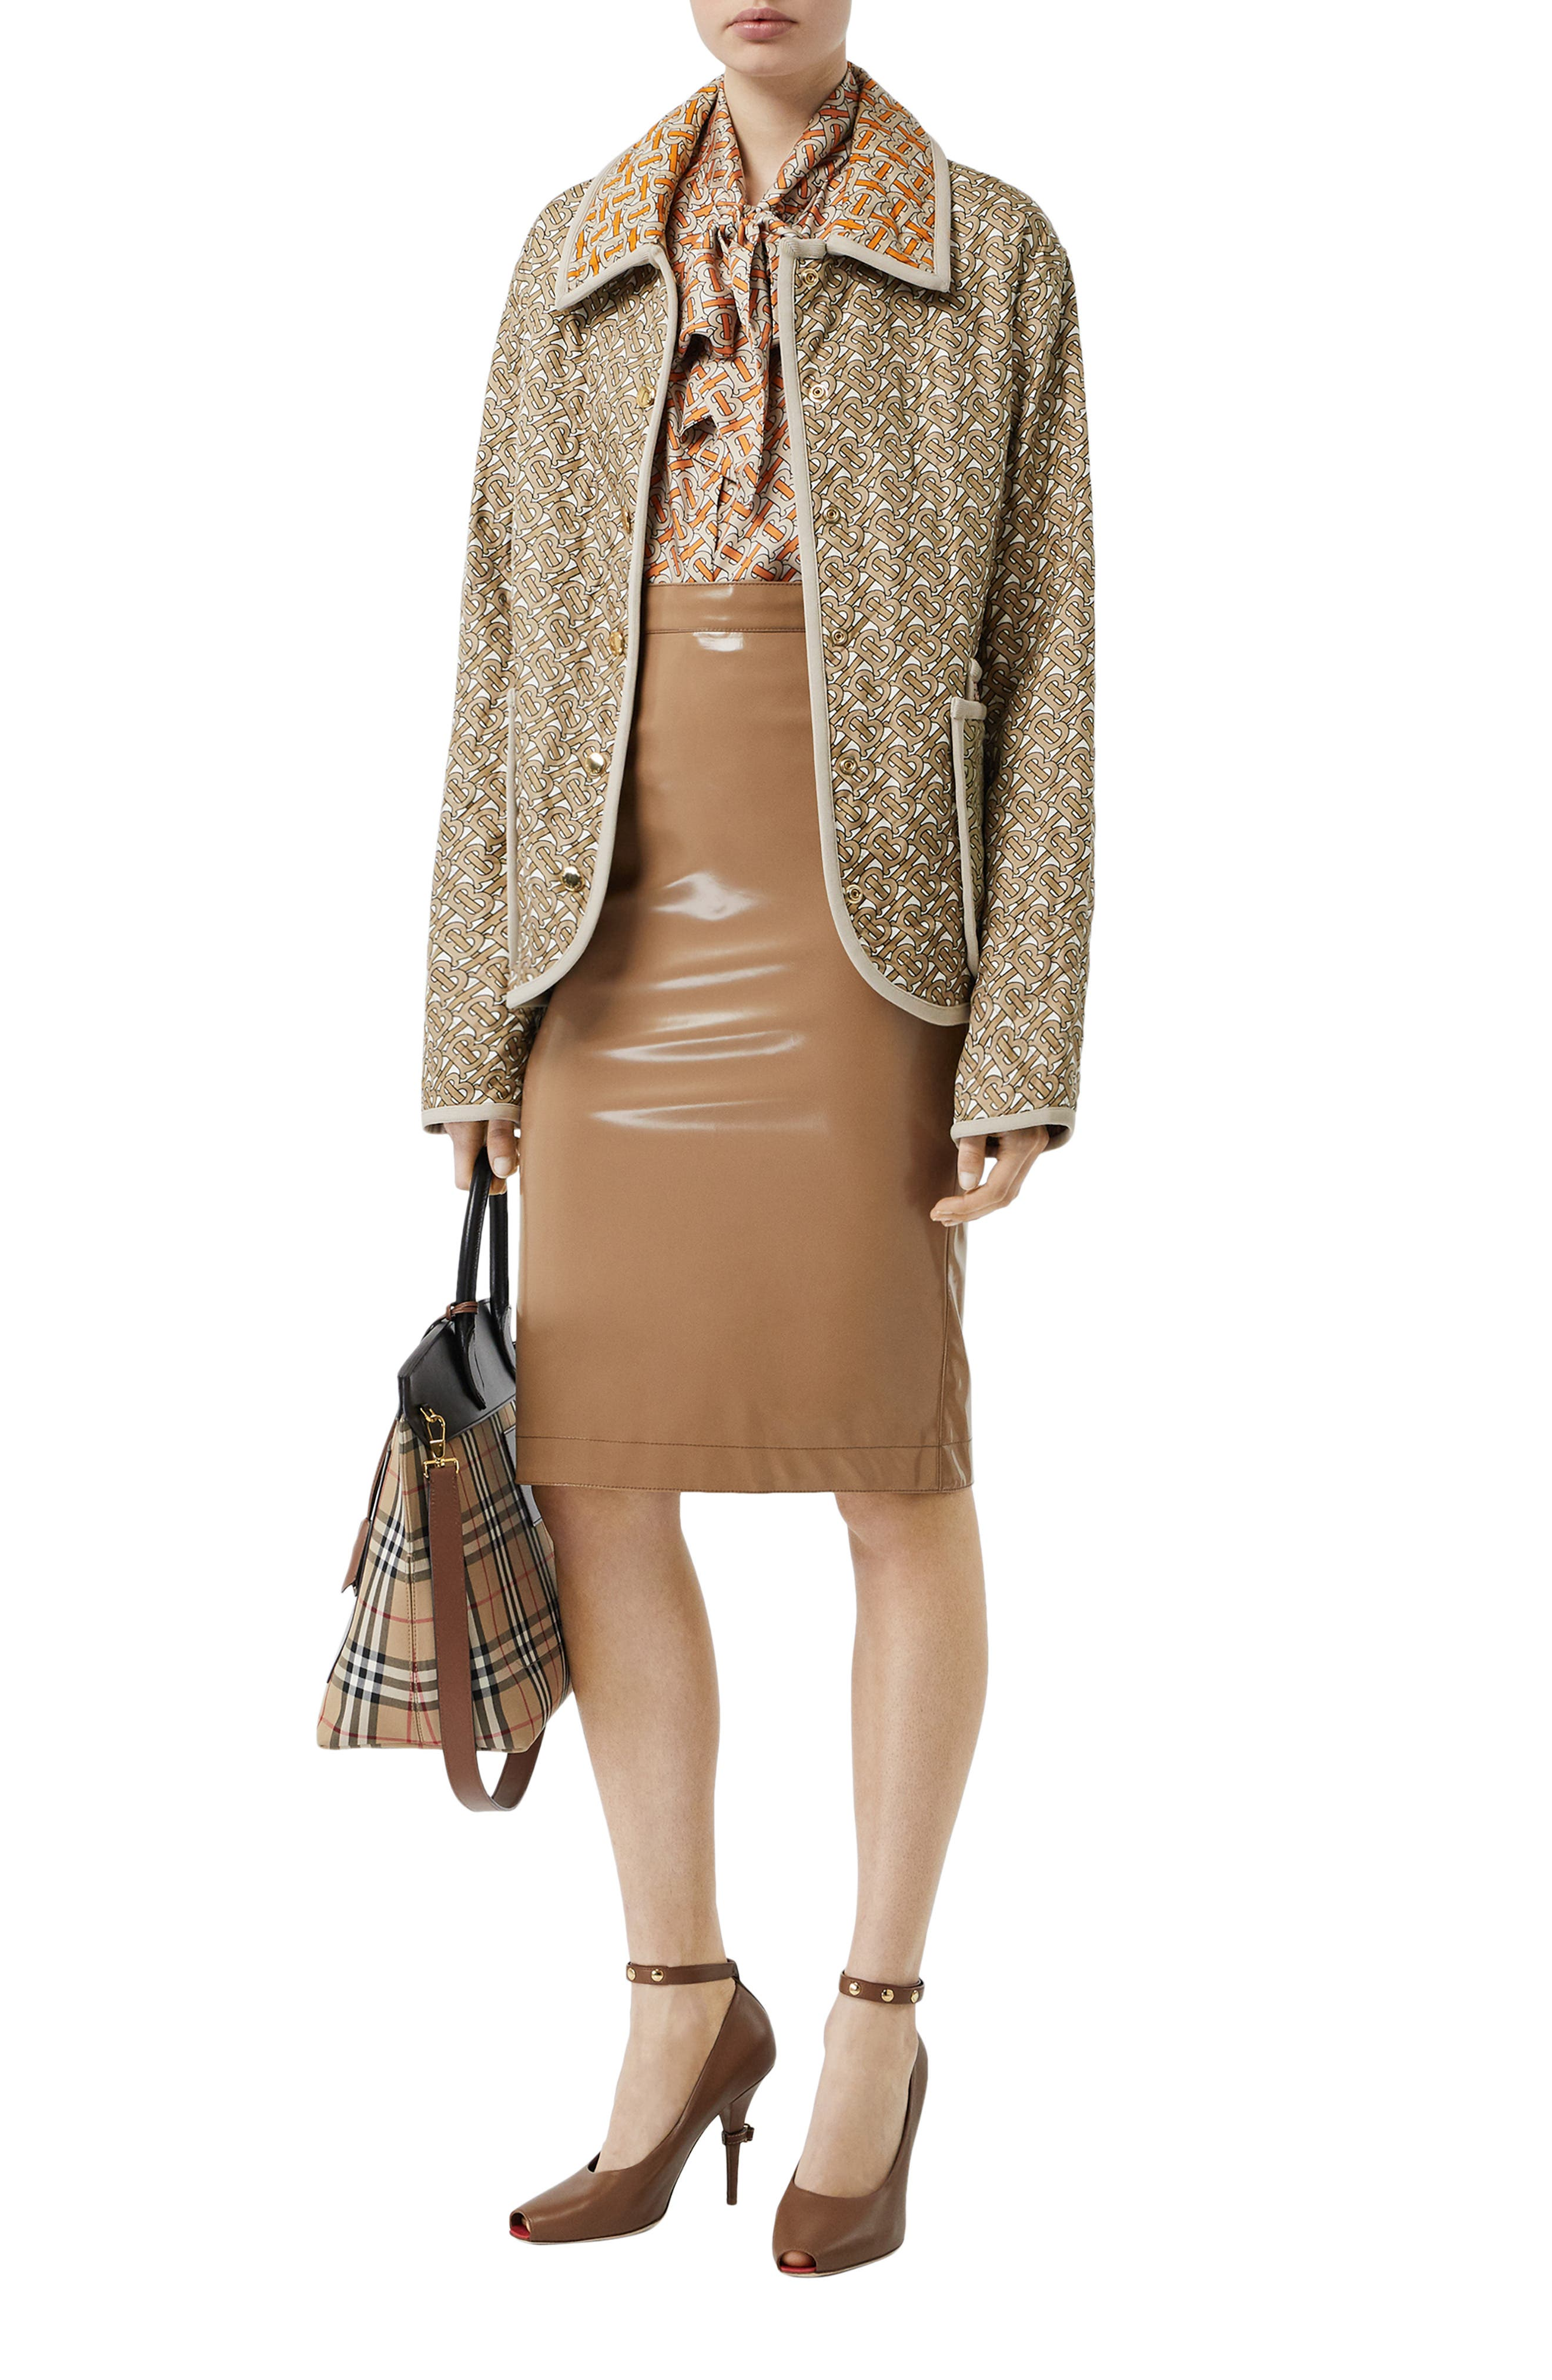 BURBERRY, Monogram Logo Print Quilted Silk Jacket, Alternate thumbnail 6, color, ARCHIVE BEIGE